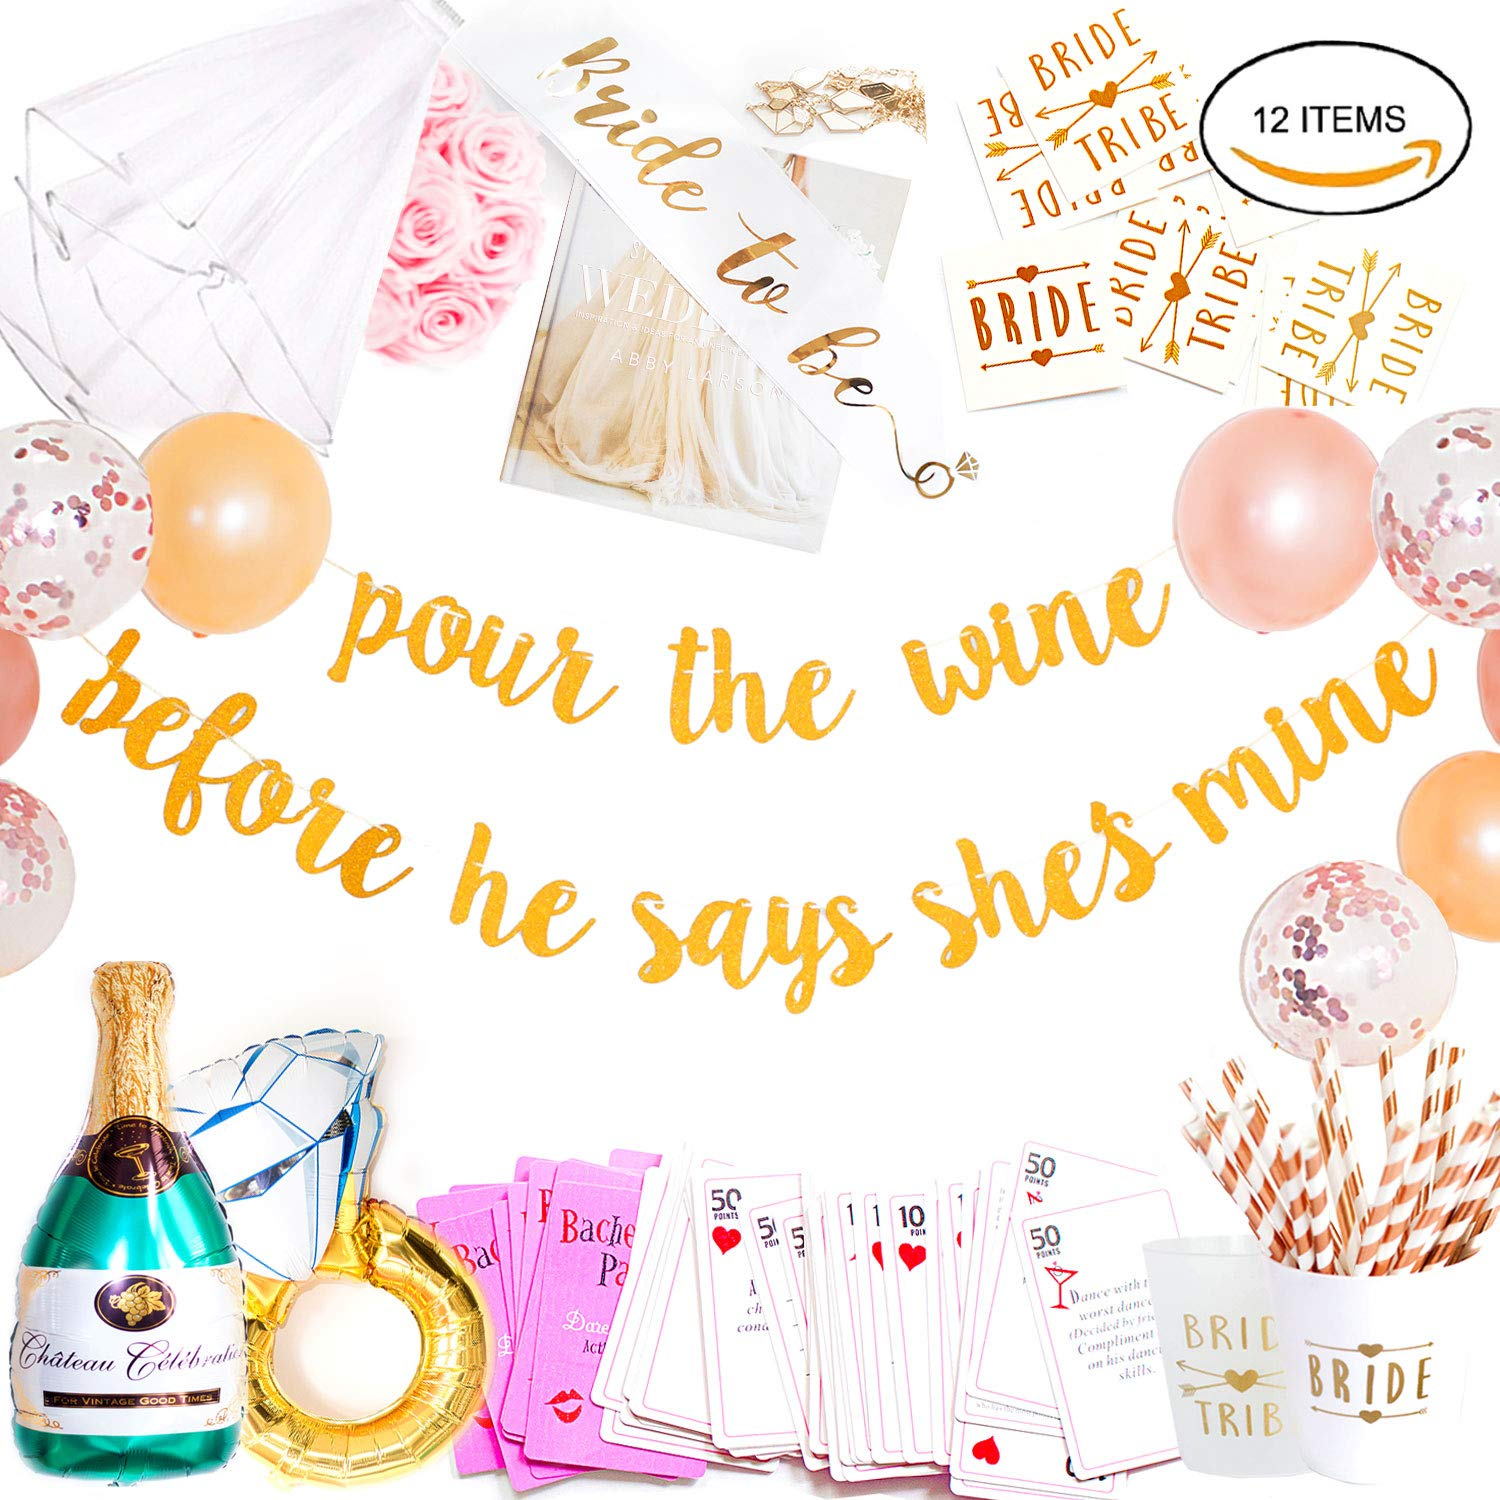 Bachelorette Party Decorations Kit (12 Items / 115 Pcs) | Bridal Shower Supplies | Gold Banner, Bride to Be Sash, Veil, Cups, Straws, Rose Gold Balloons, Engagement Ring & Champagne Foil Balloon, Game